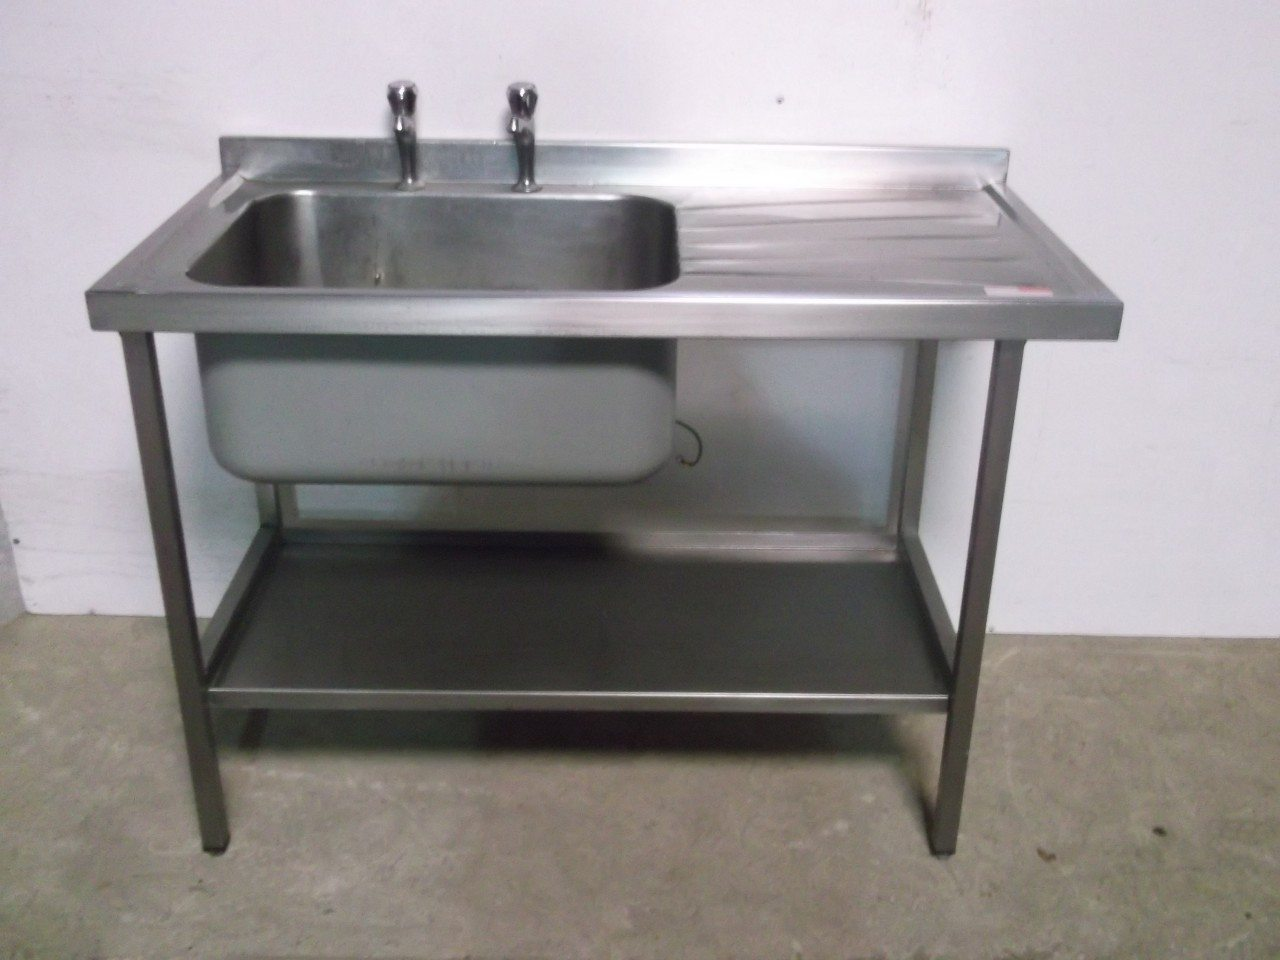 Single Bowl Right Hand Drainer Stainless Sink Caterquip